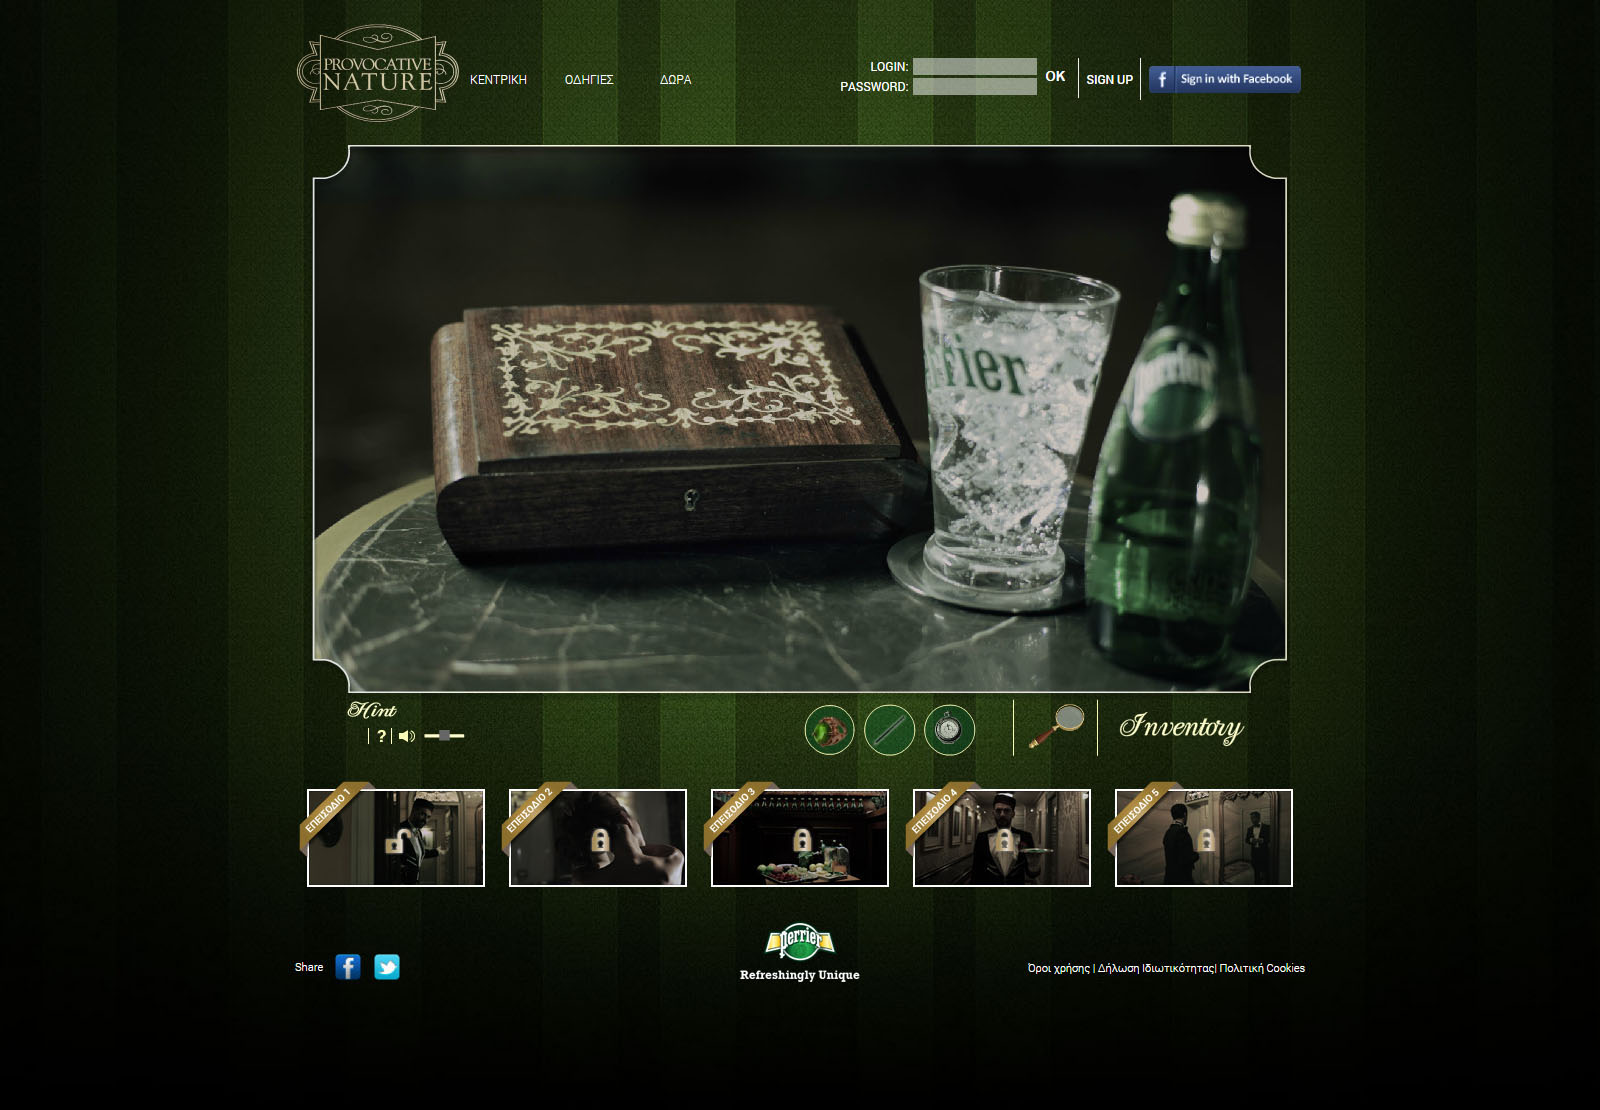 Perrier Provocative Nature Game Screen 2